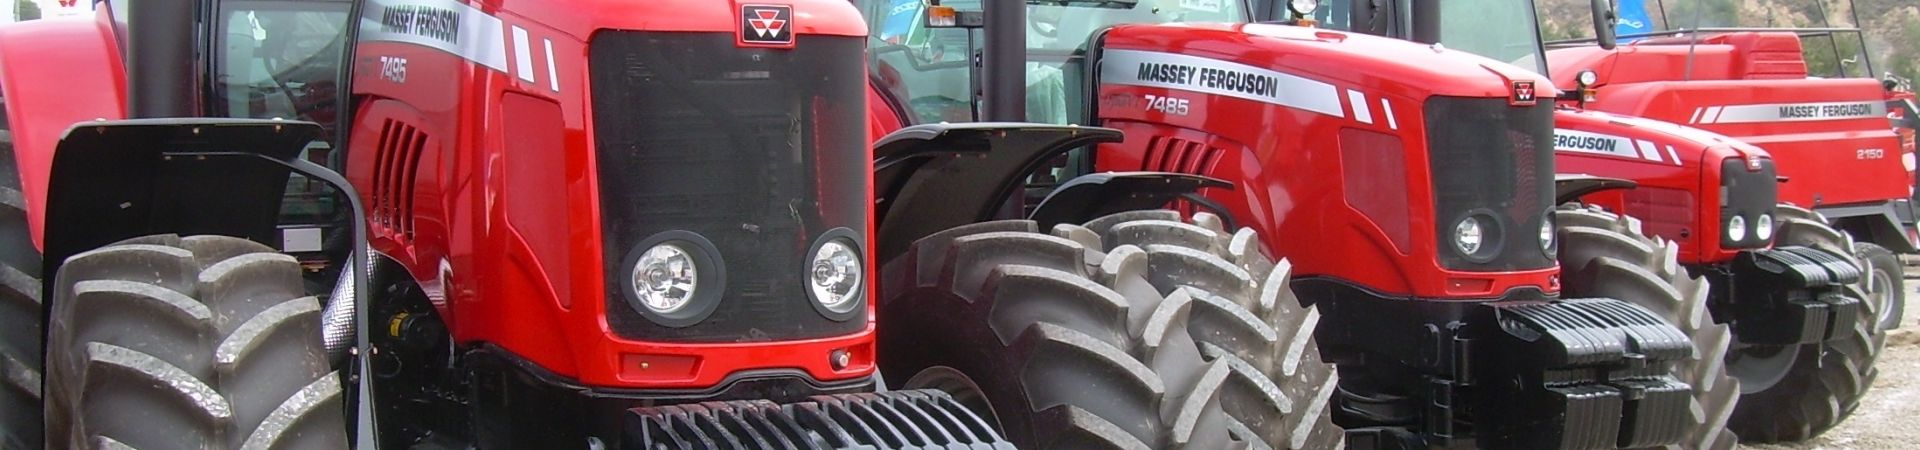 A line of red massey ferguson tractors